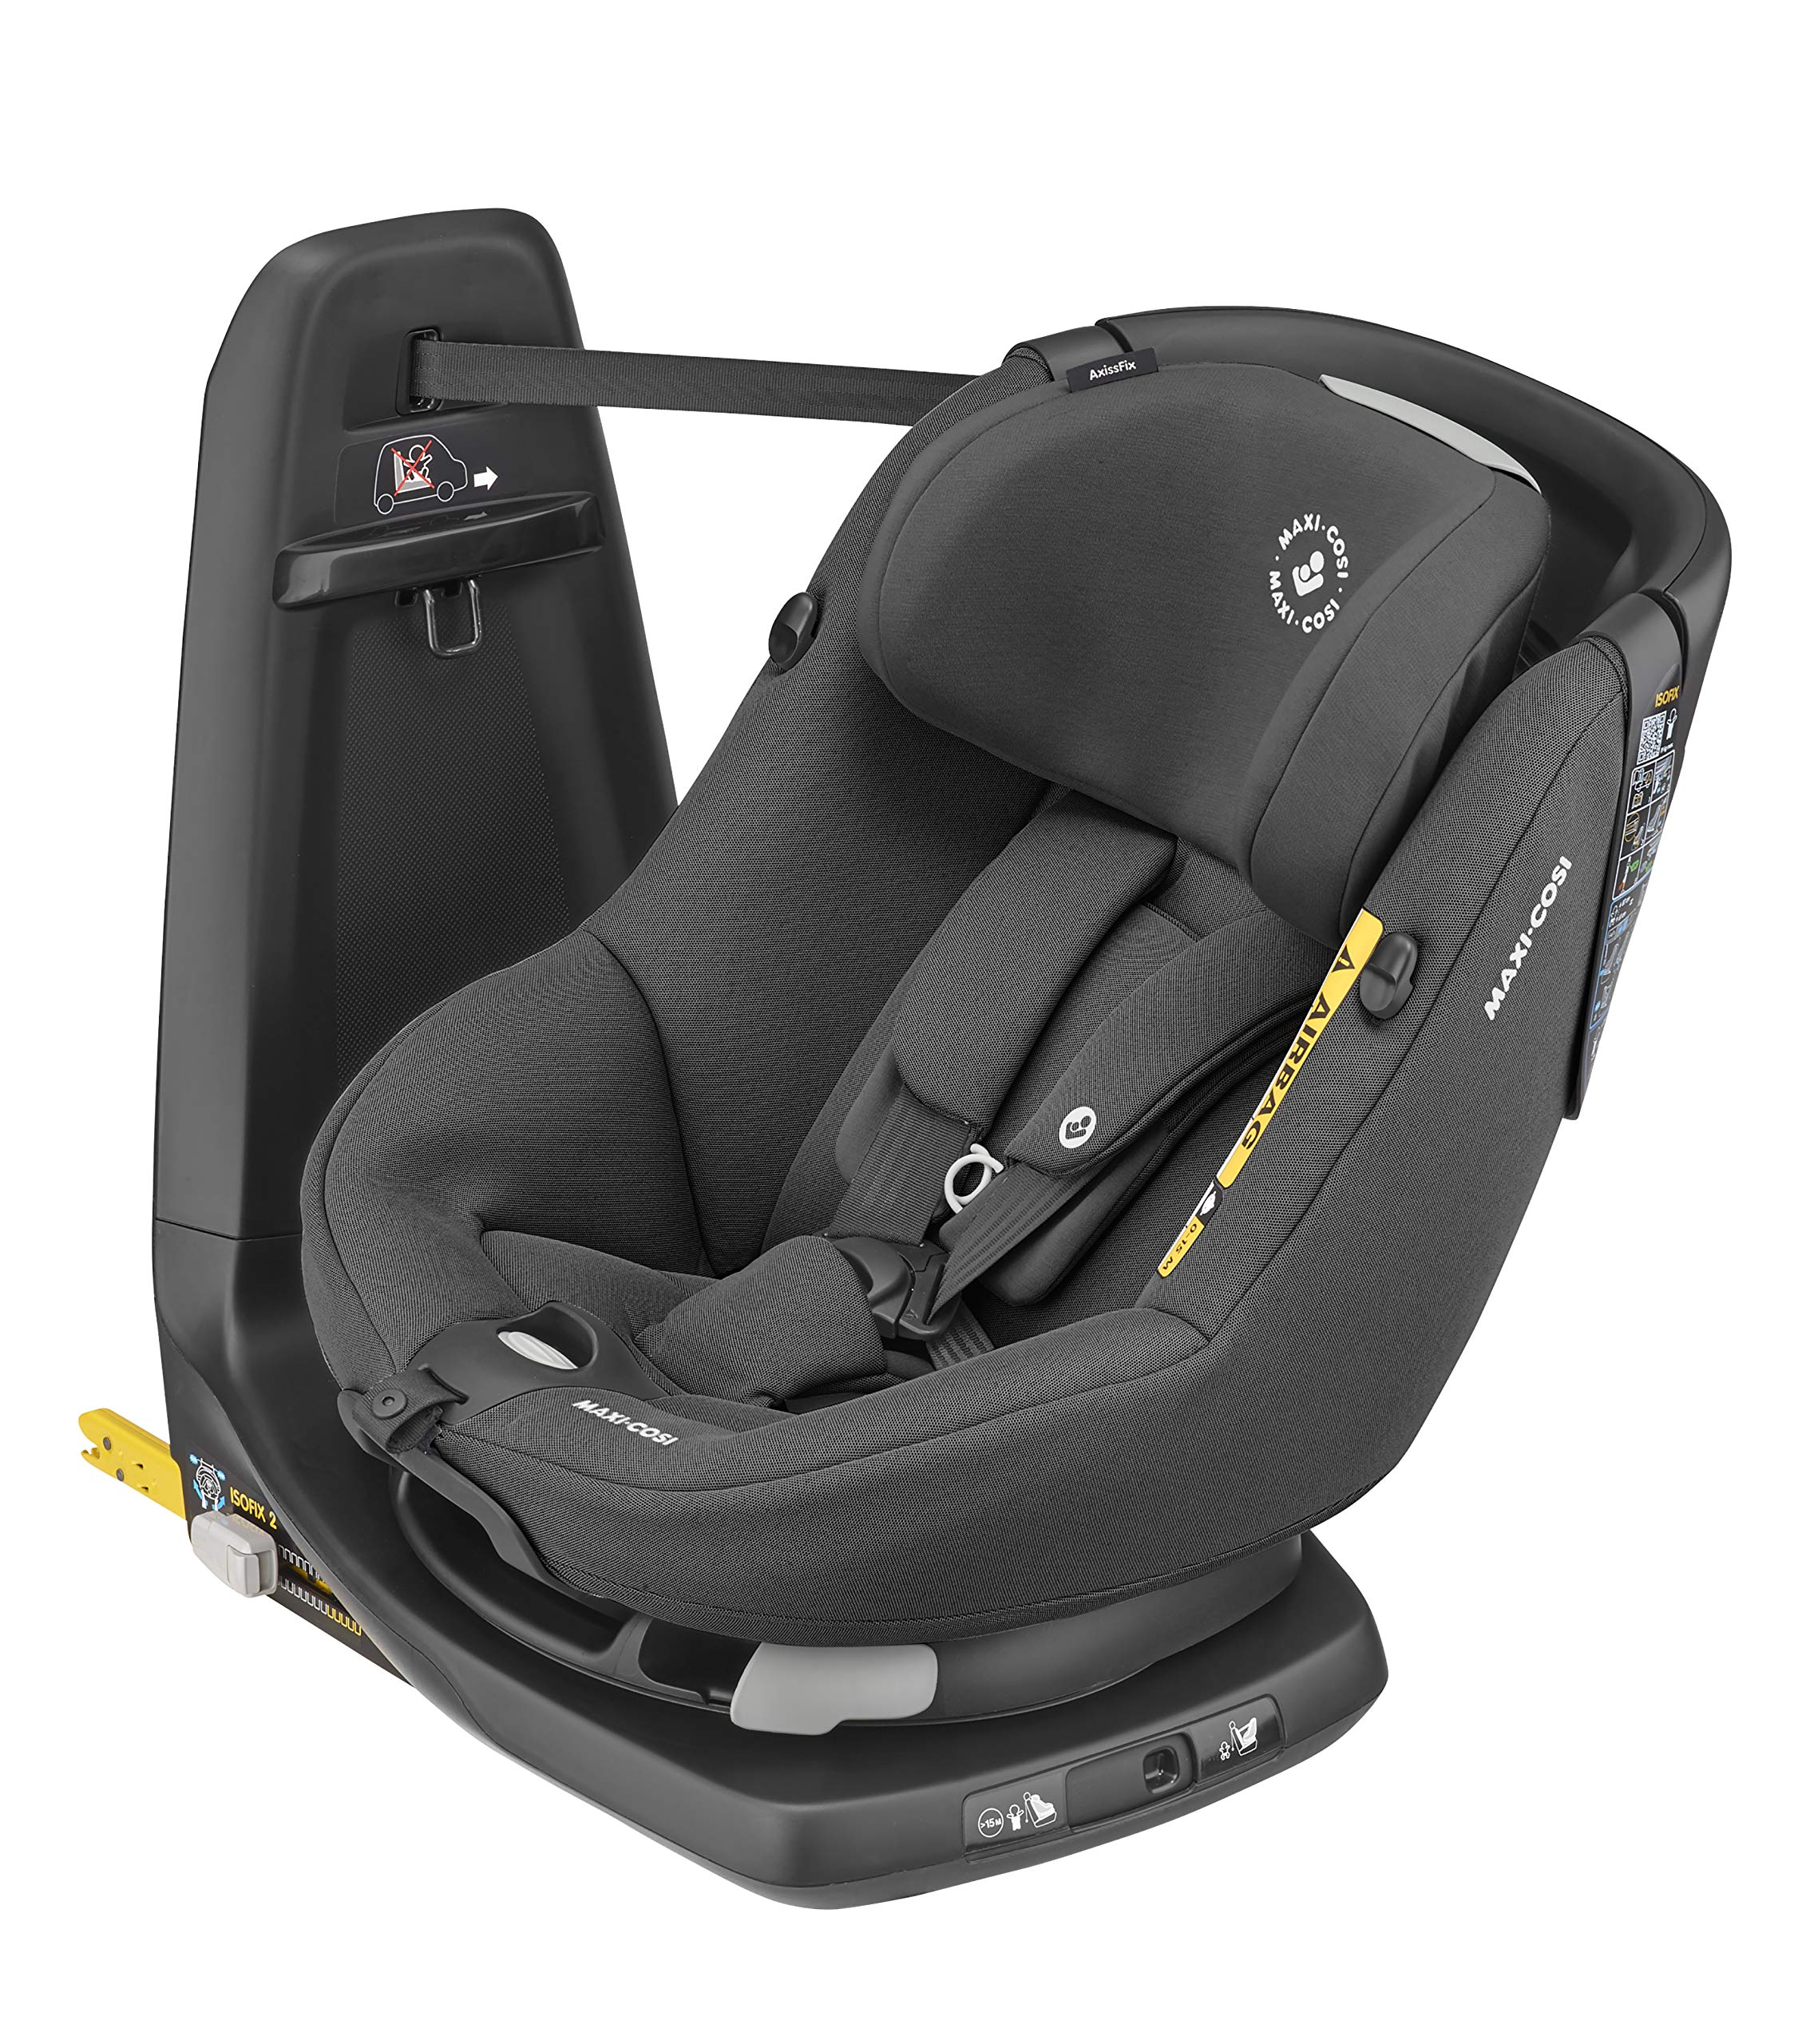 Maxi-Cosi Axissfix Toddler Car Seat, Swivel Car Seat, 4 Months - 4 Years, 61-105 cm, Authentic Black Maxi-Cosi Toddler car seat, suitable from approx. 4 months up to 4 years (61 - 105 cm) 360° swivel car seat, to easily get your child in and out the seat I-size (r129) car seat legislation, due to extended rearward-facing travel and improved side impact protection 1